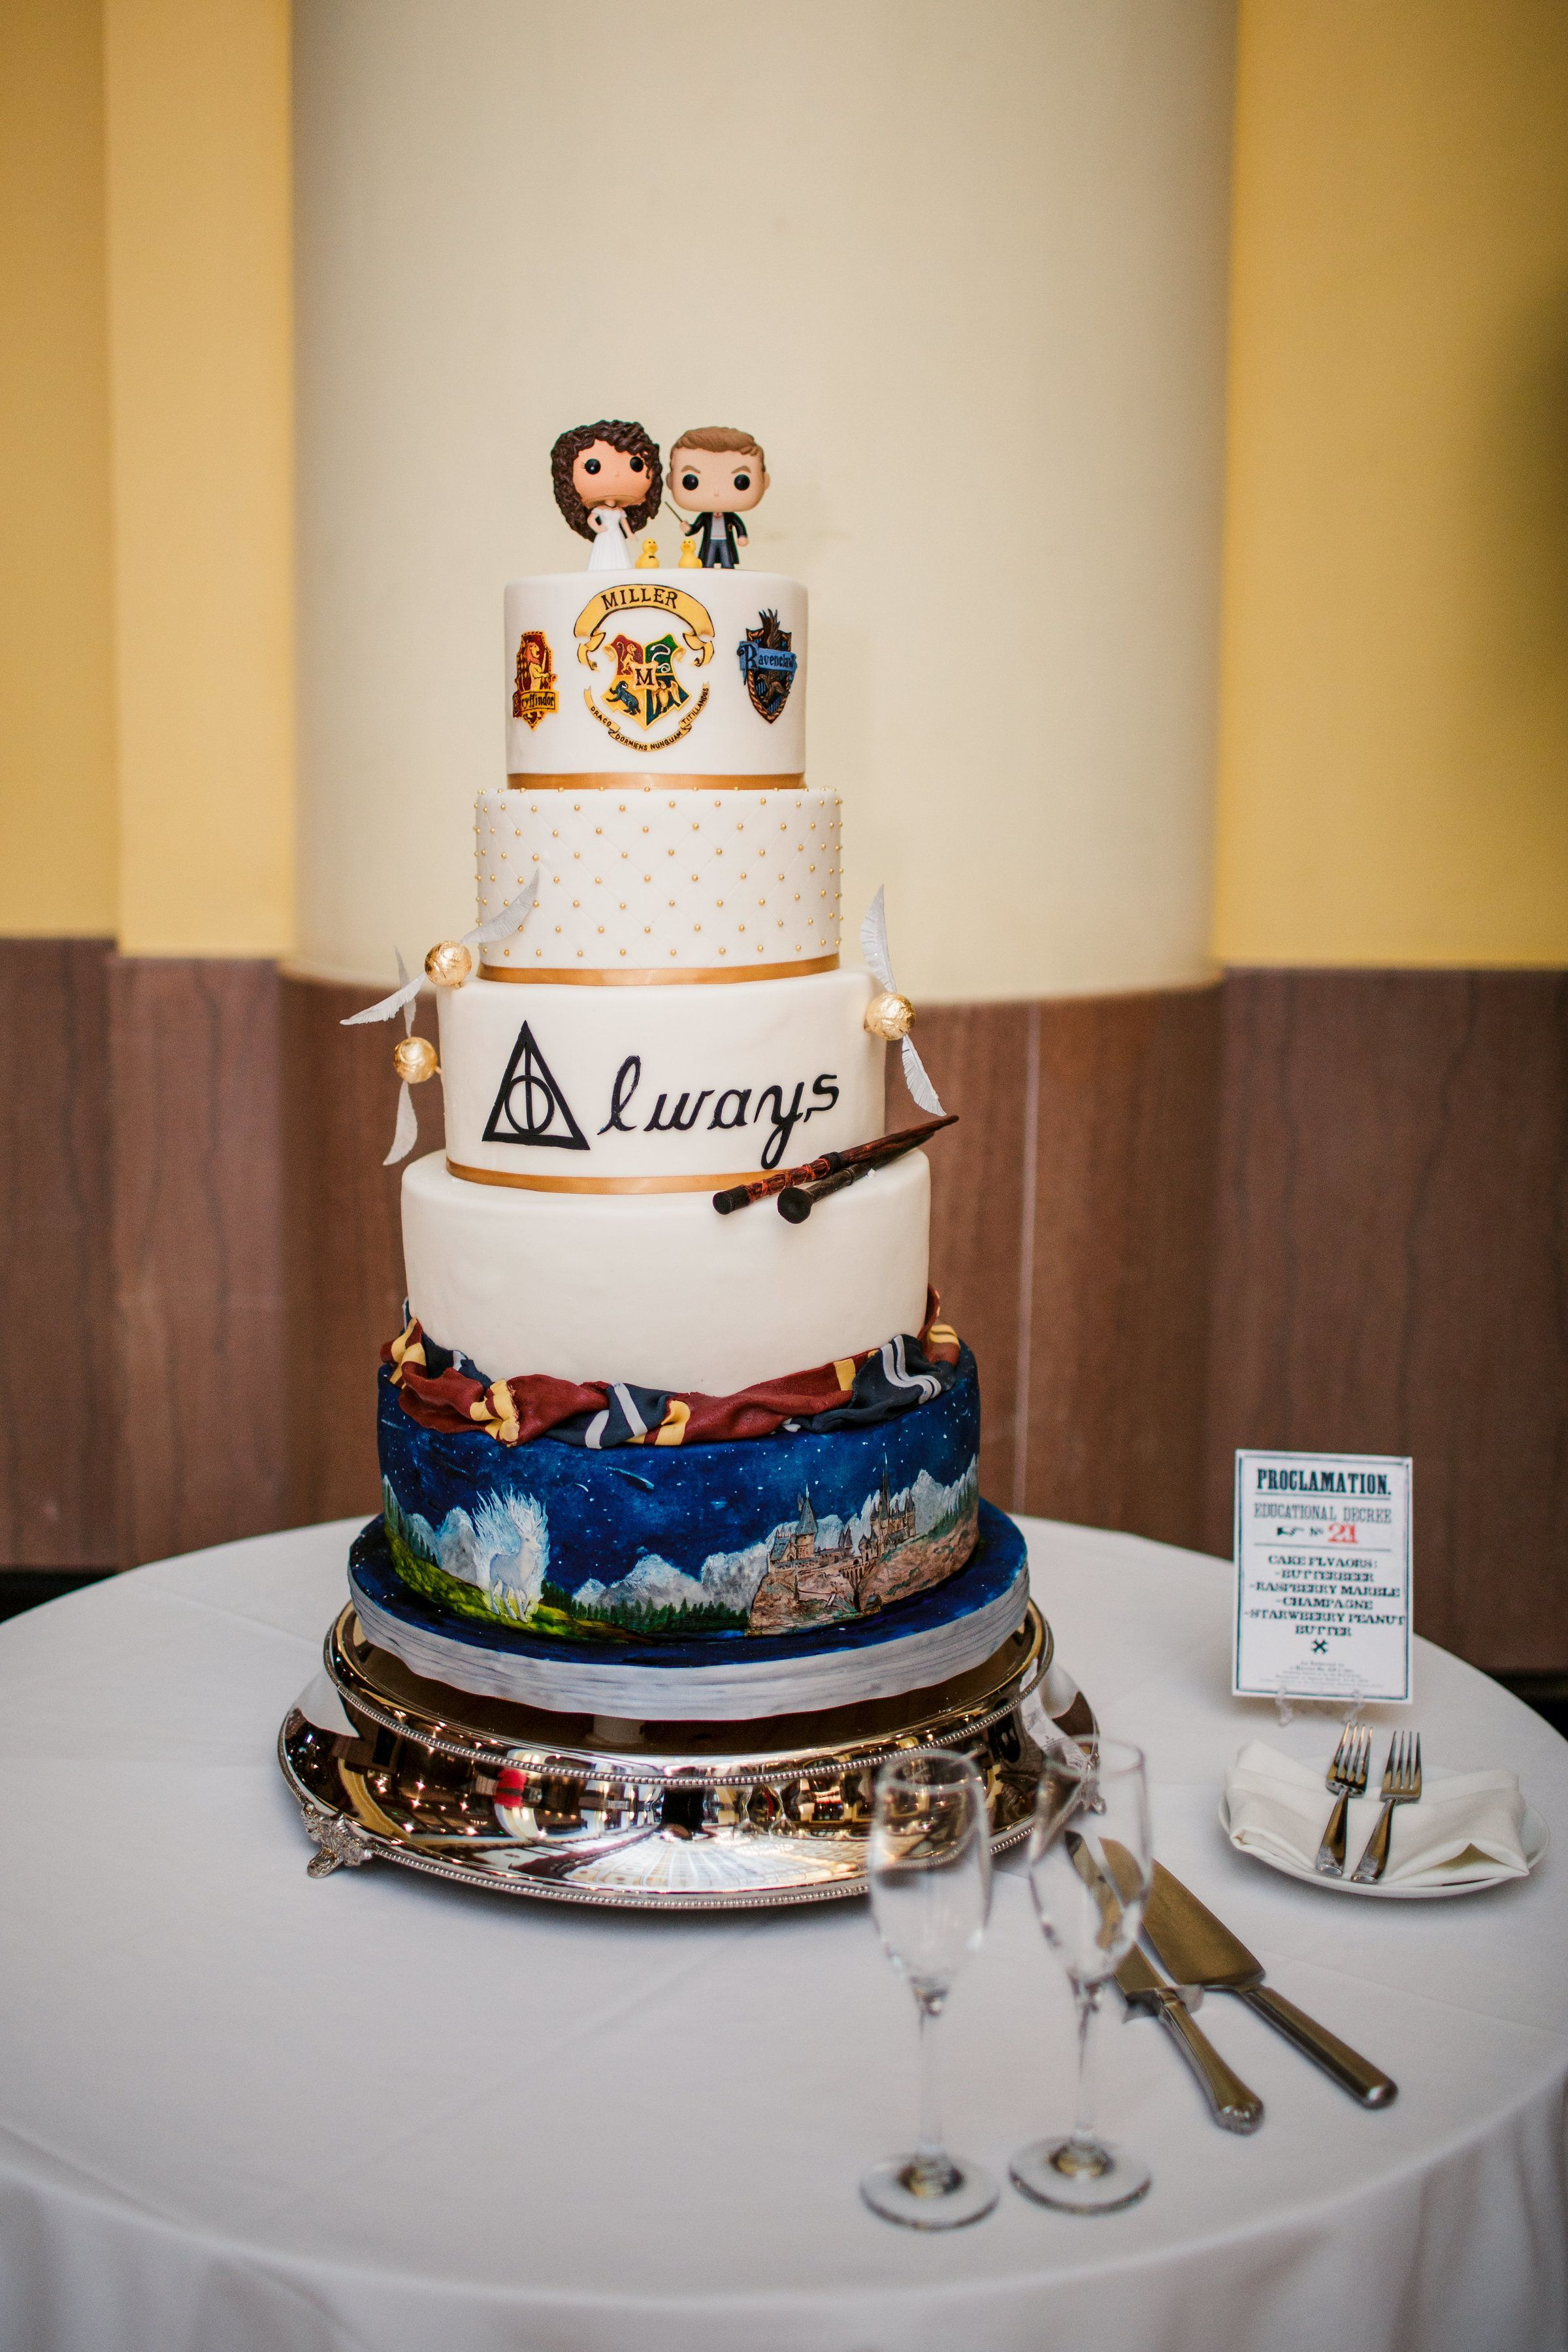 Harry Potter Wedding Cake.Harry Potter Wedding Cake Made By Oh Crumbs Bakery For My